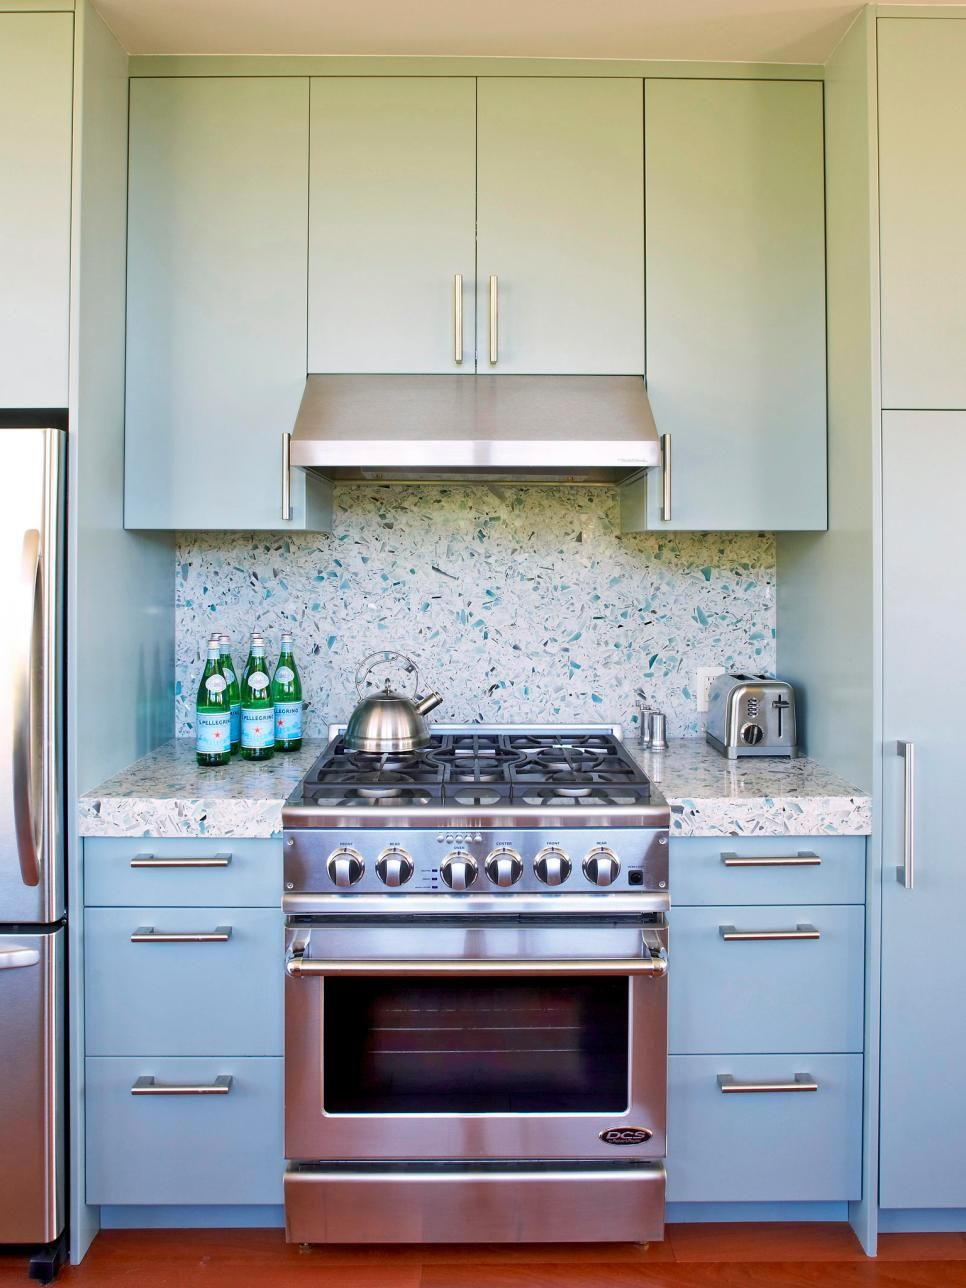 Dreamy Kitchen Backsplashes | Kitchen backsplash, Terrazzo and Hgtv